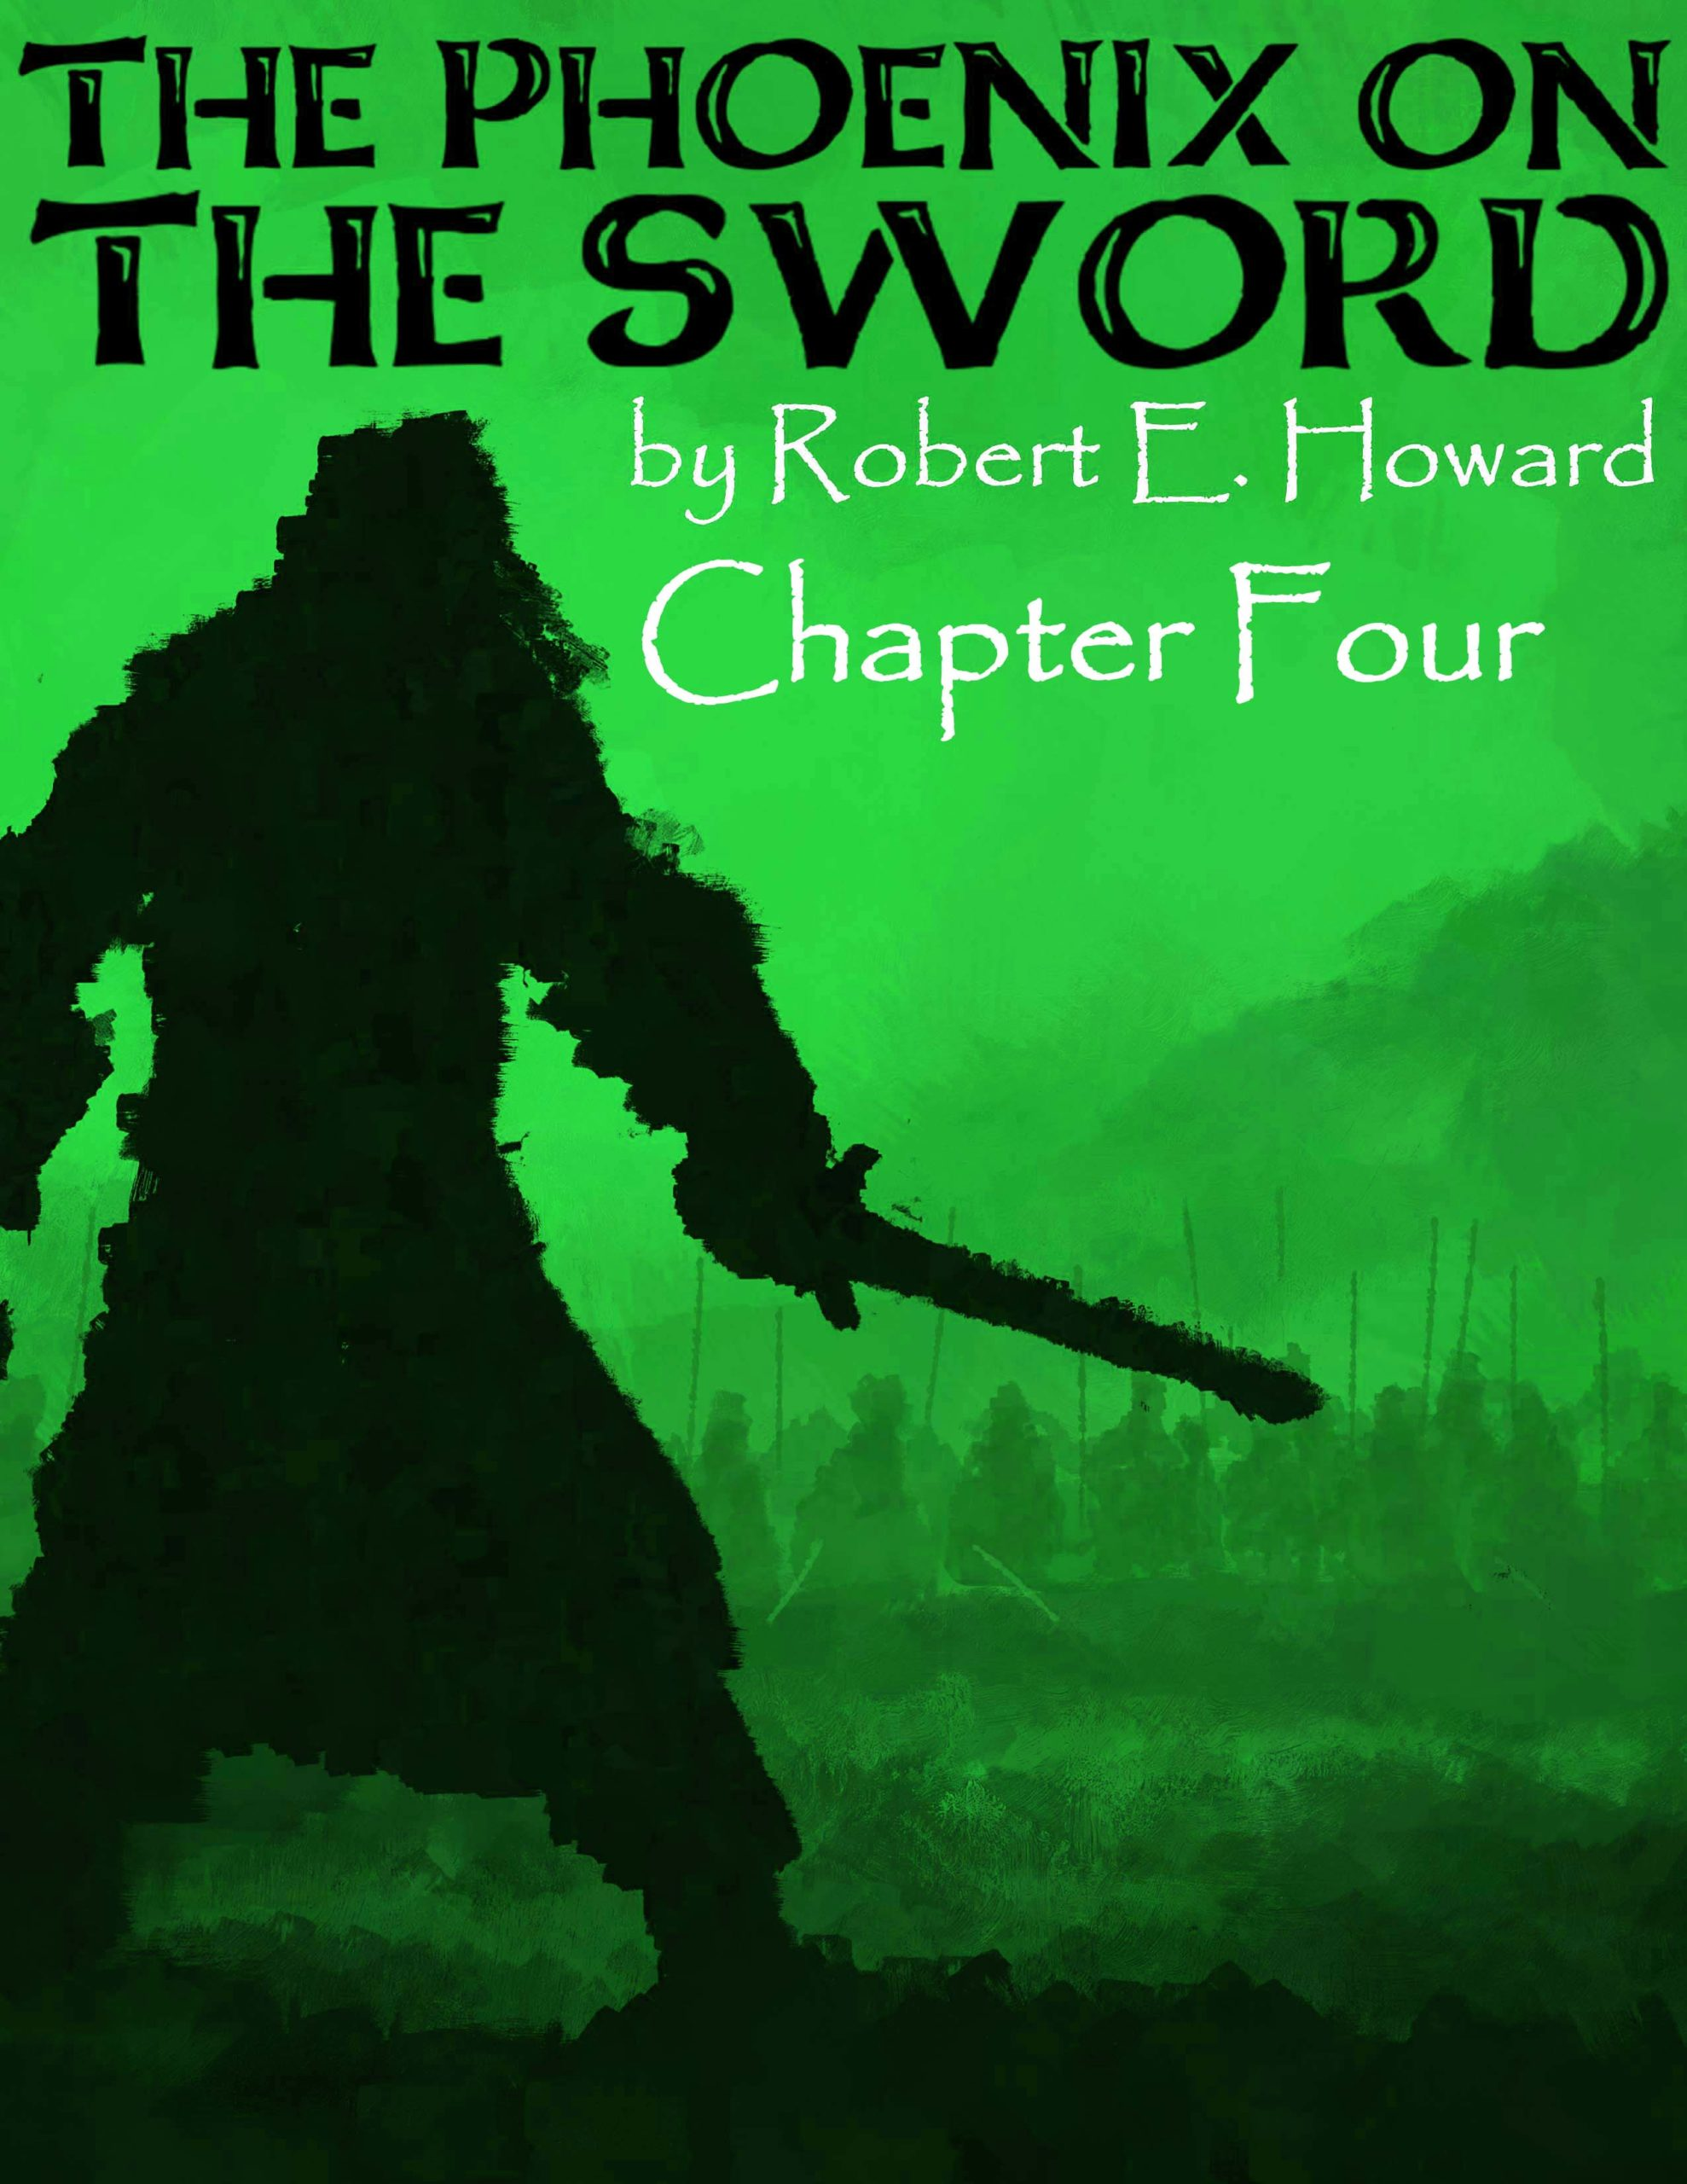 The Phoenix on the Sword Chapter 4